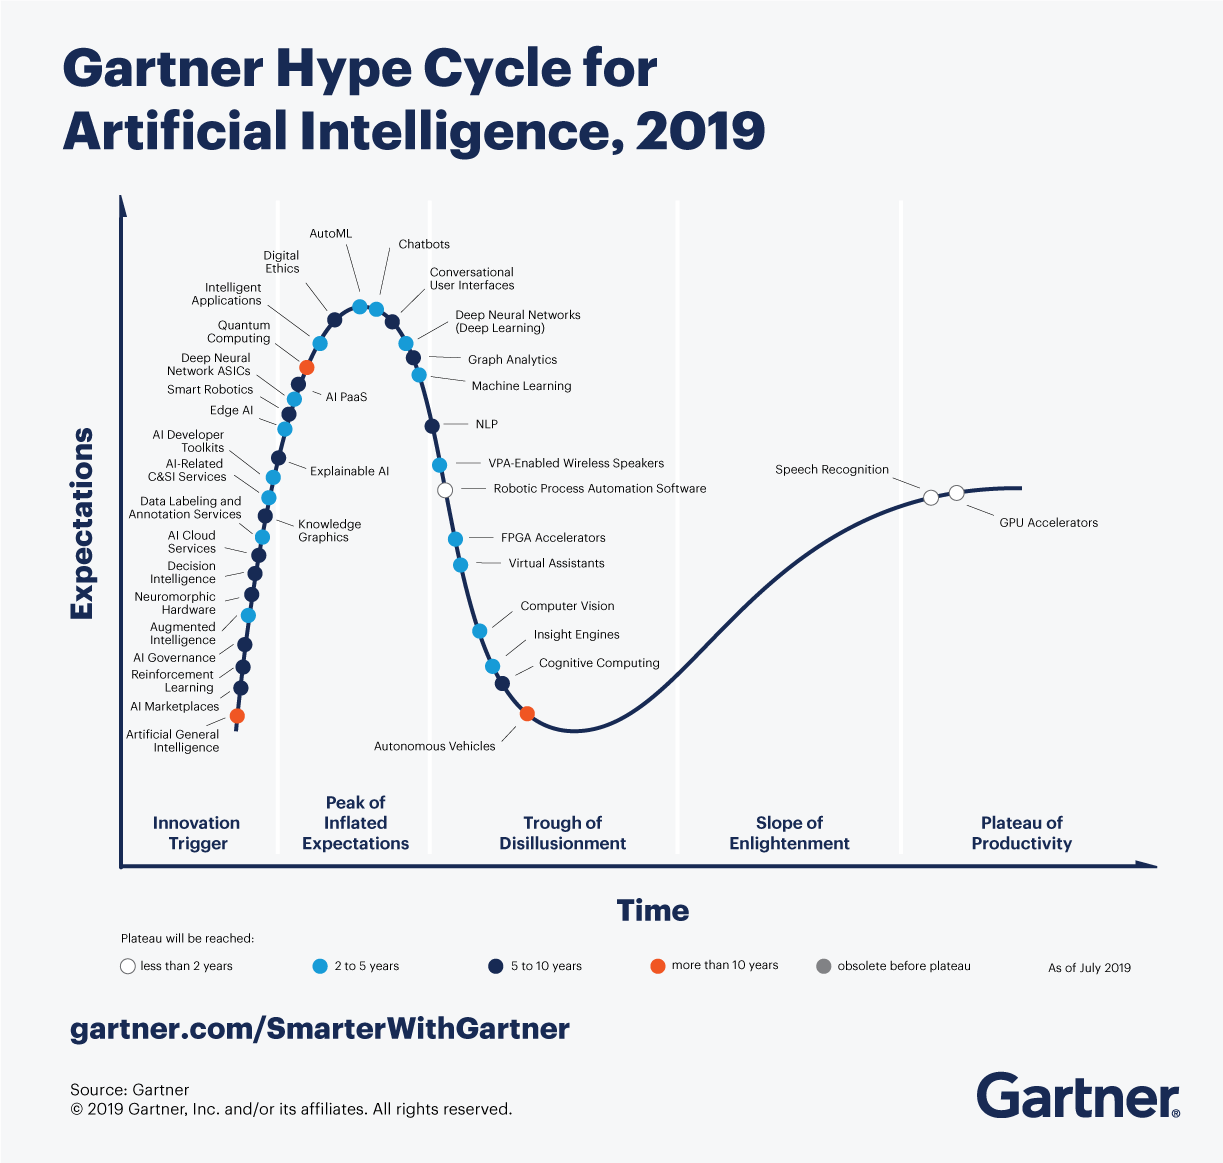 The Gartner Hype Cycle for Artificial Intelligence, 2019